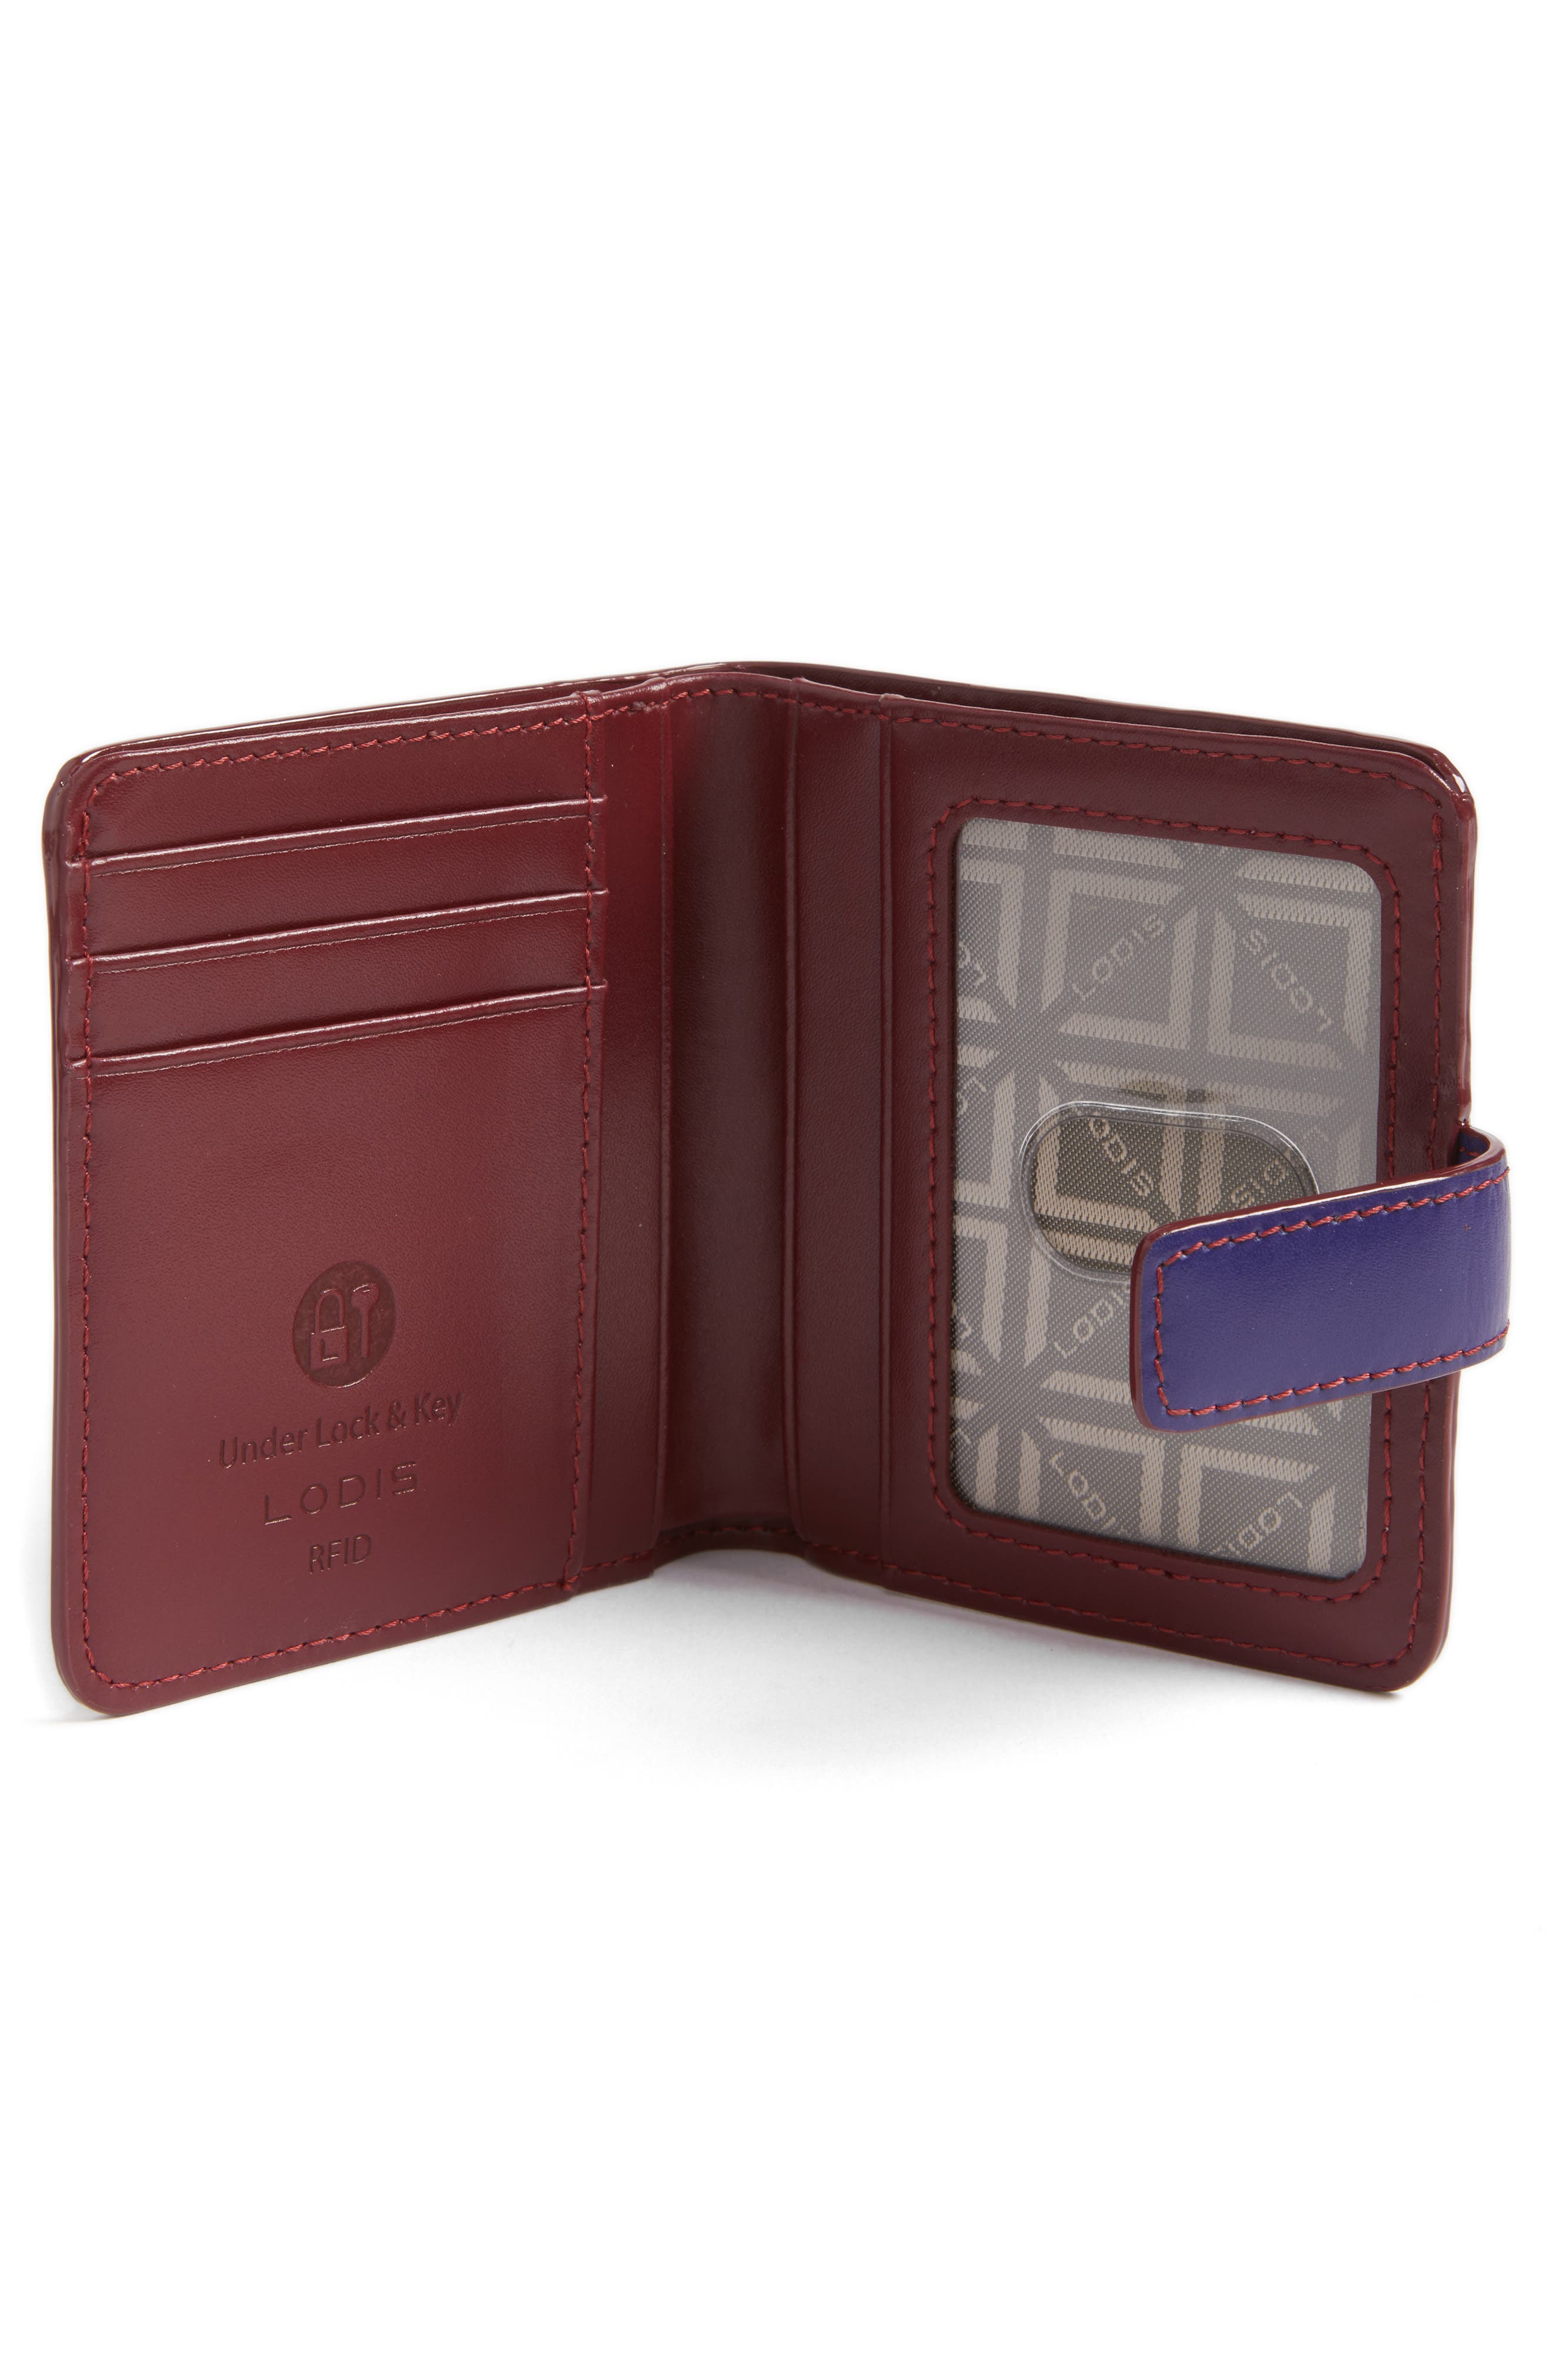 Lodis Petite Audrey RFID Leather Wallet,                             Alternate thumbnail 2, color,                             Midnight/ Chianti